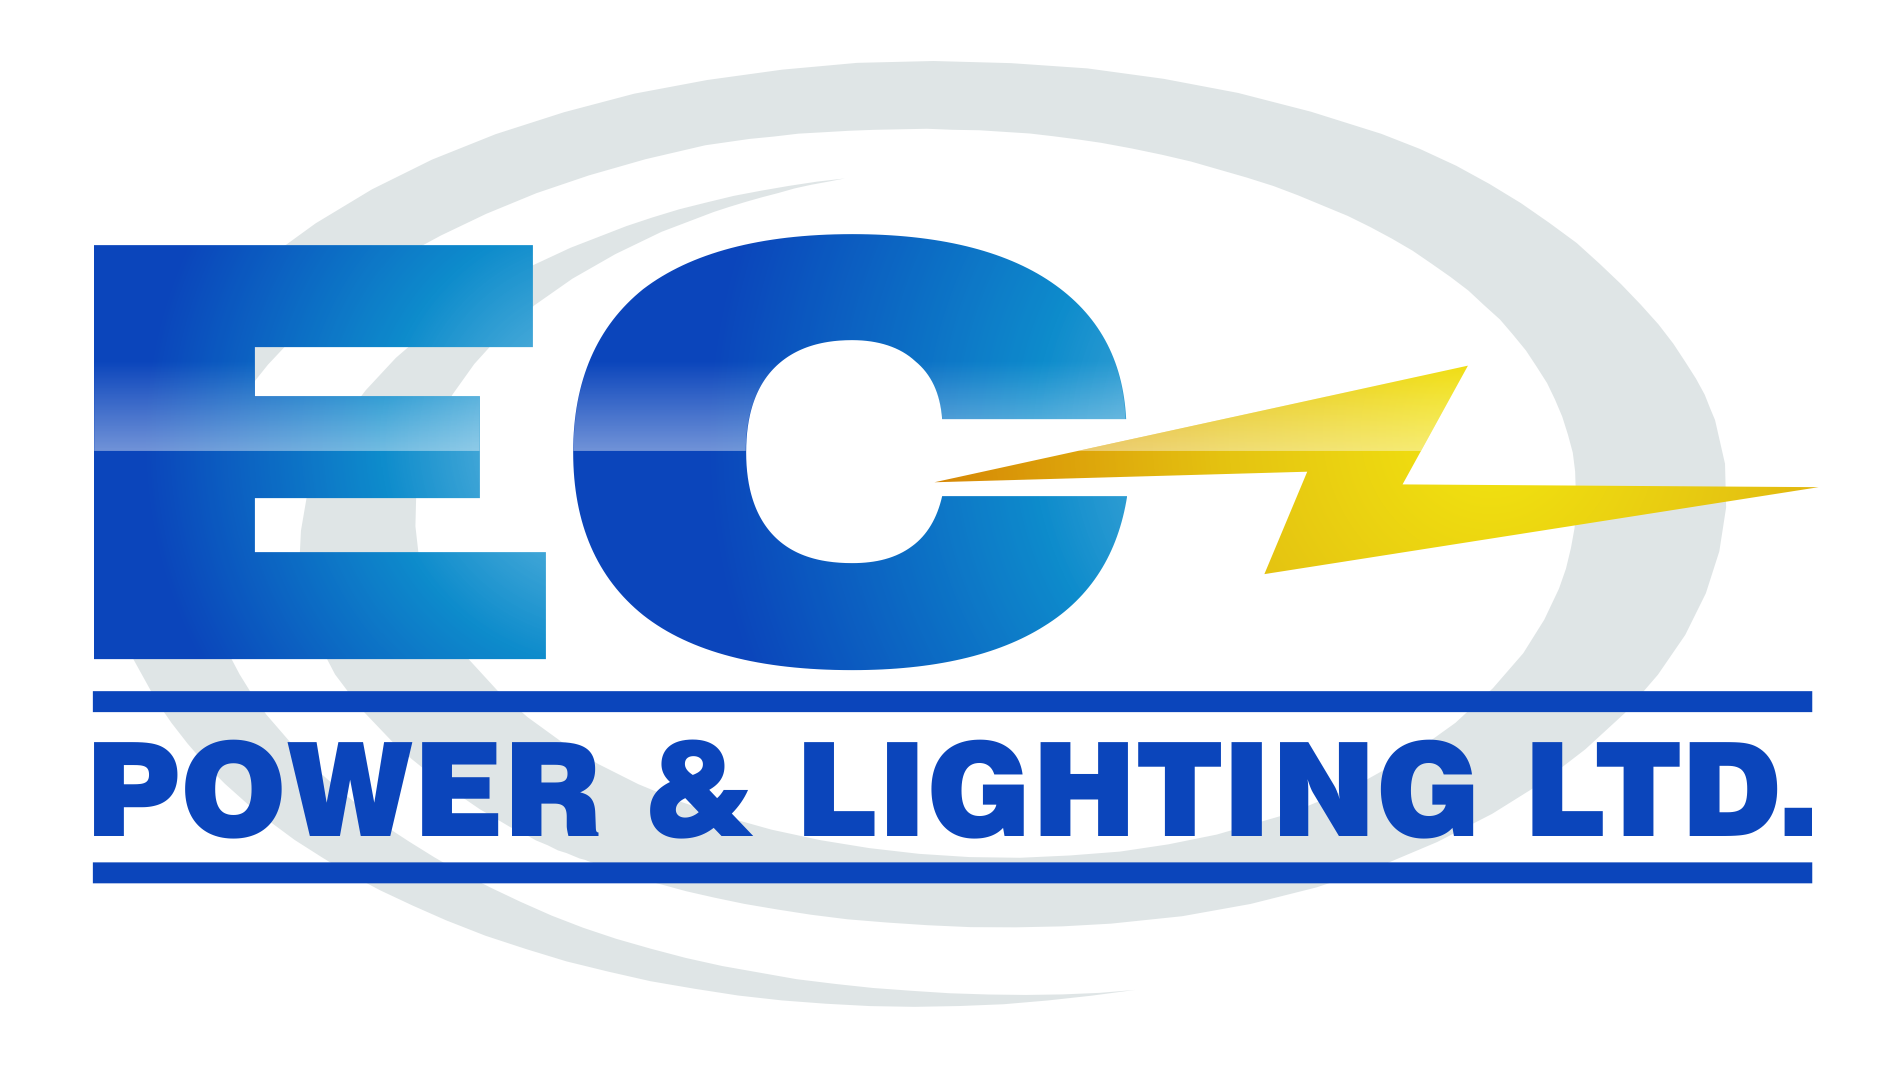 E.C. Power & Lighting Ltd. is an experienced electrical contractor servicing Southern Ontario since 1996. Our services include utility ...